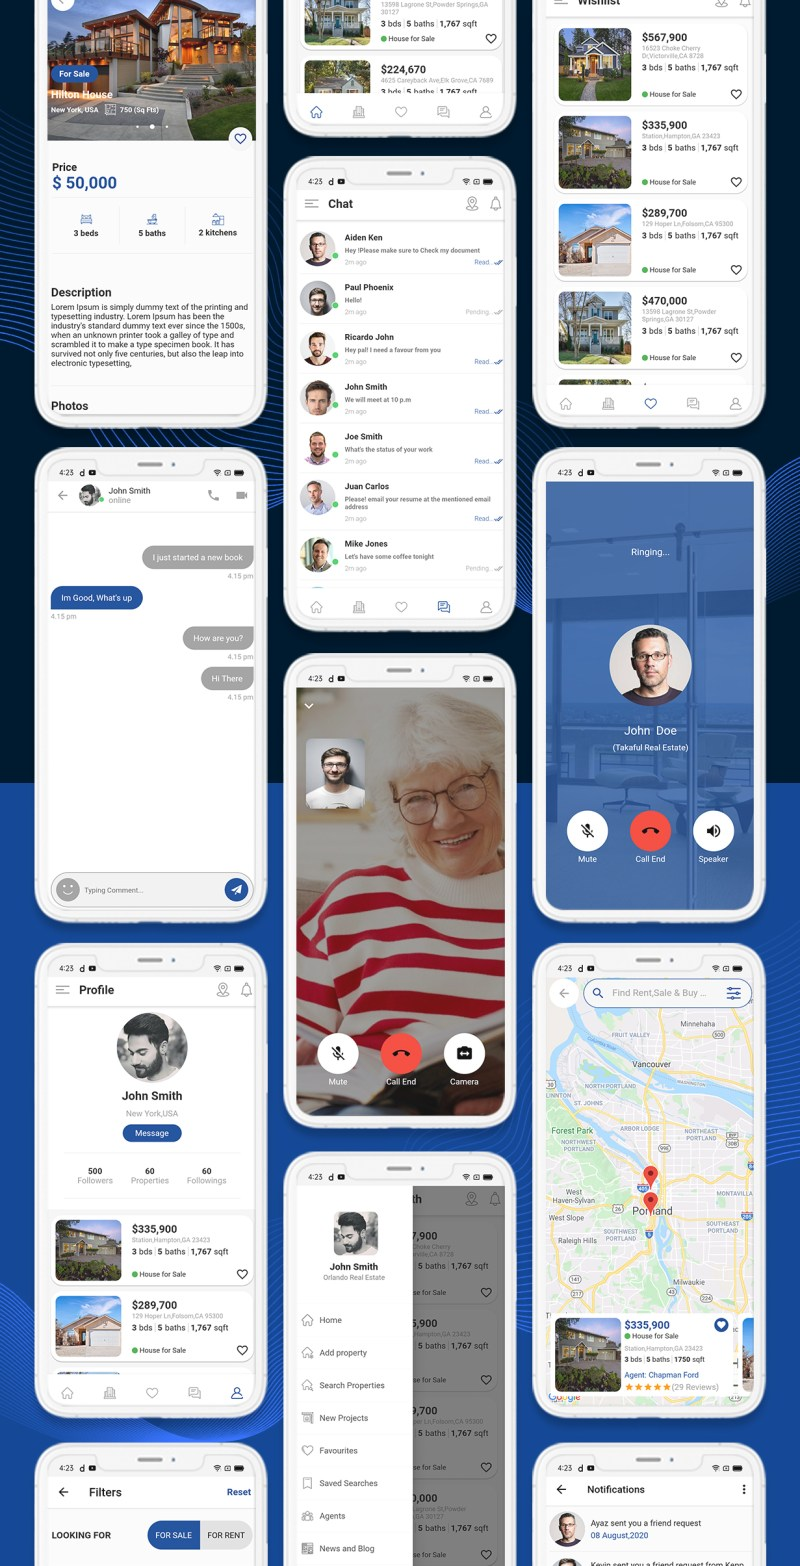 onProperty - Real Estate App Template for Flutter (Android and IOS) - 13